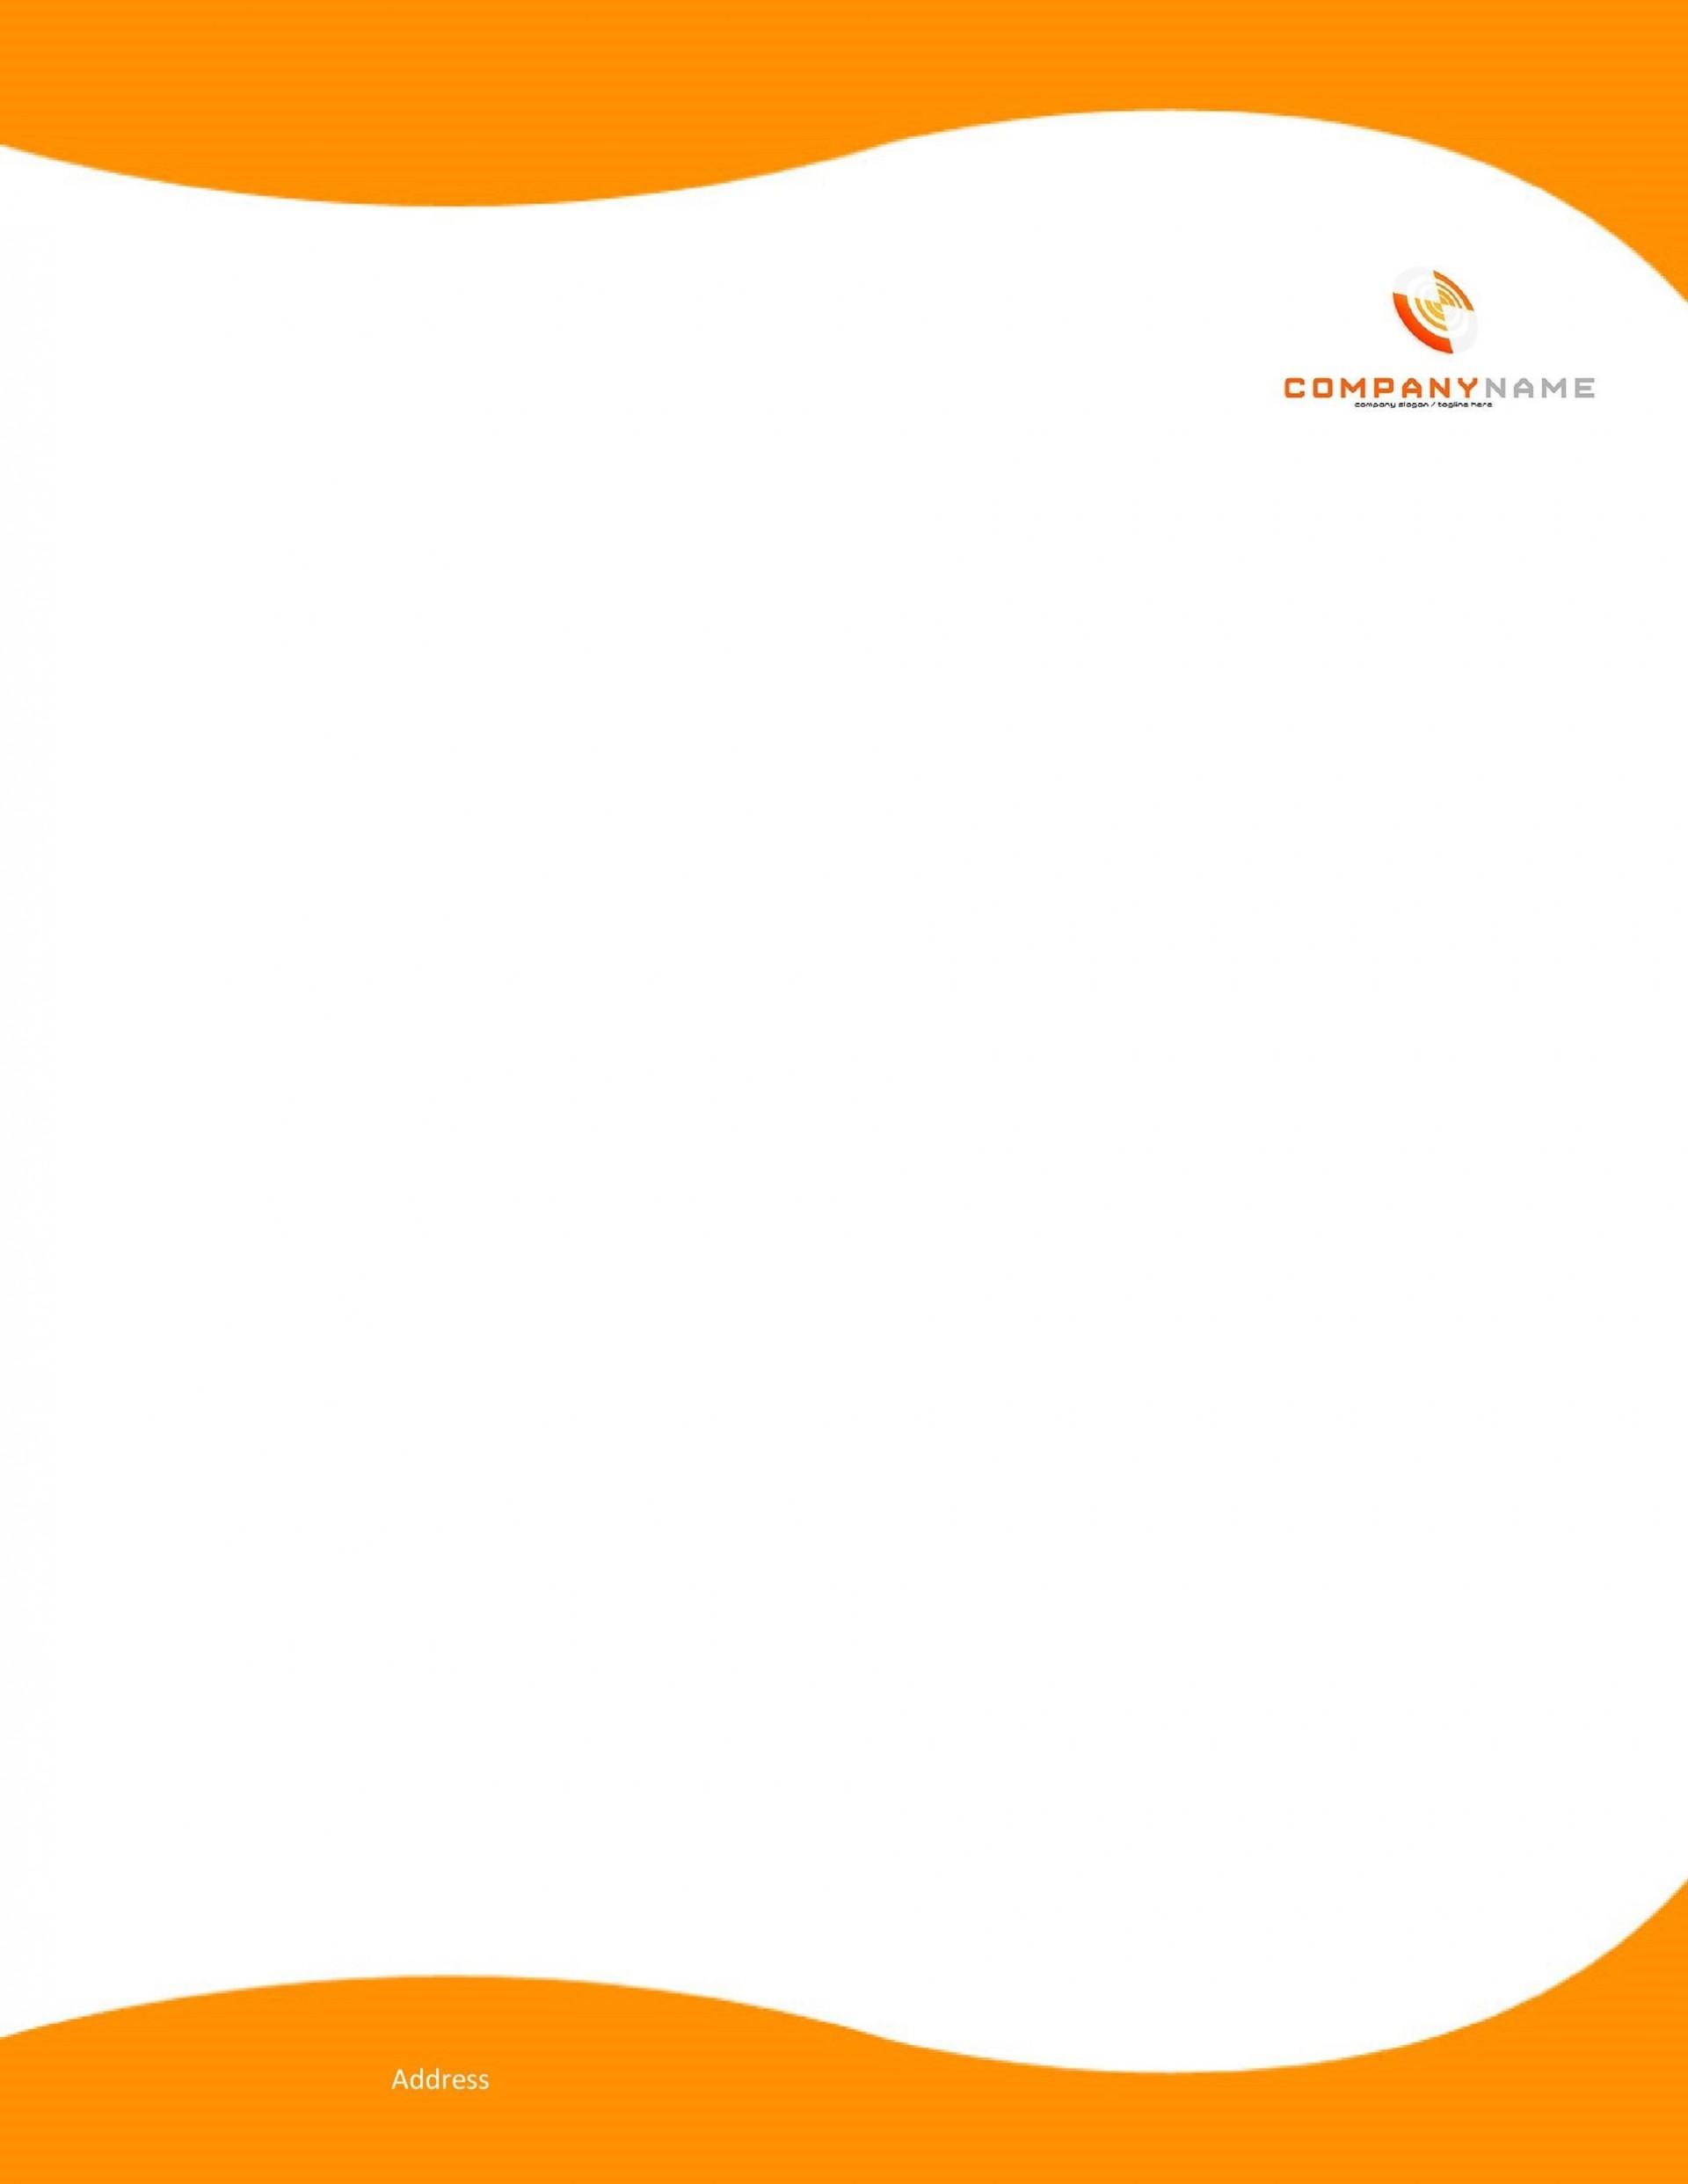 007 Stupendou Letterhead Template Free Download Word Concept  Restaurant Microsoft Format In1920